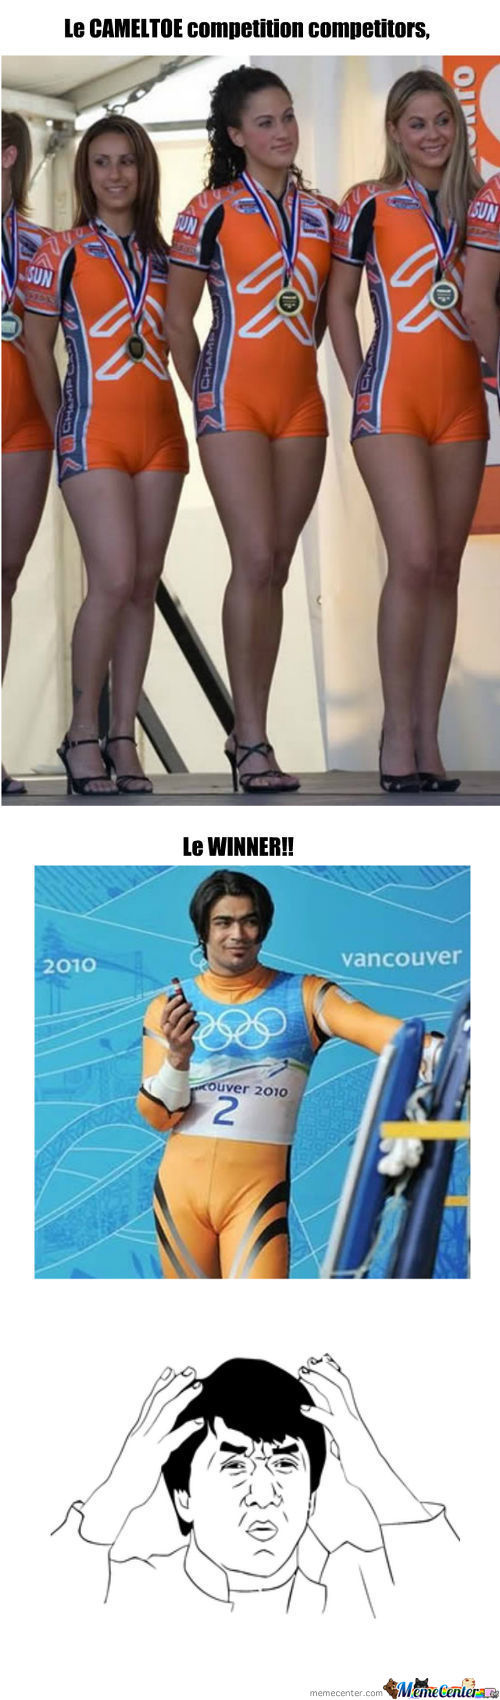 Le Cameltoe Competition.